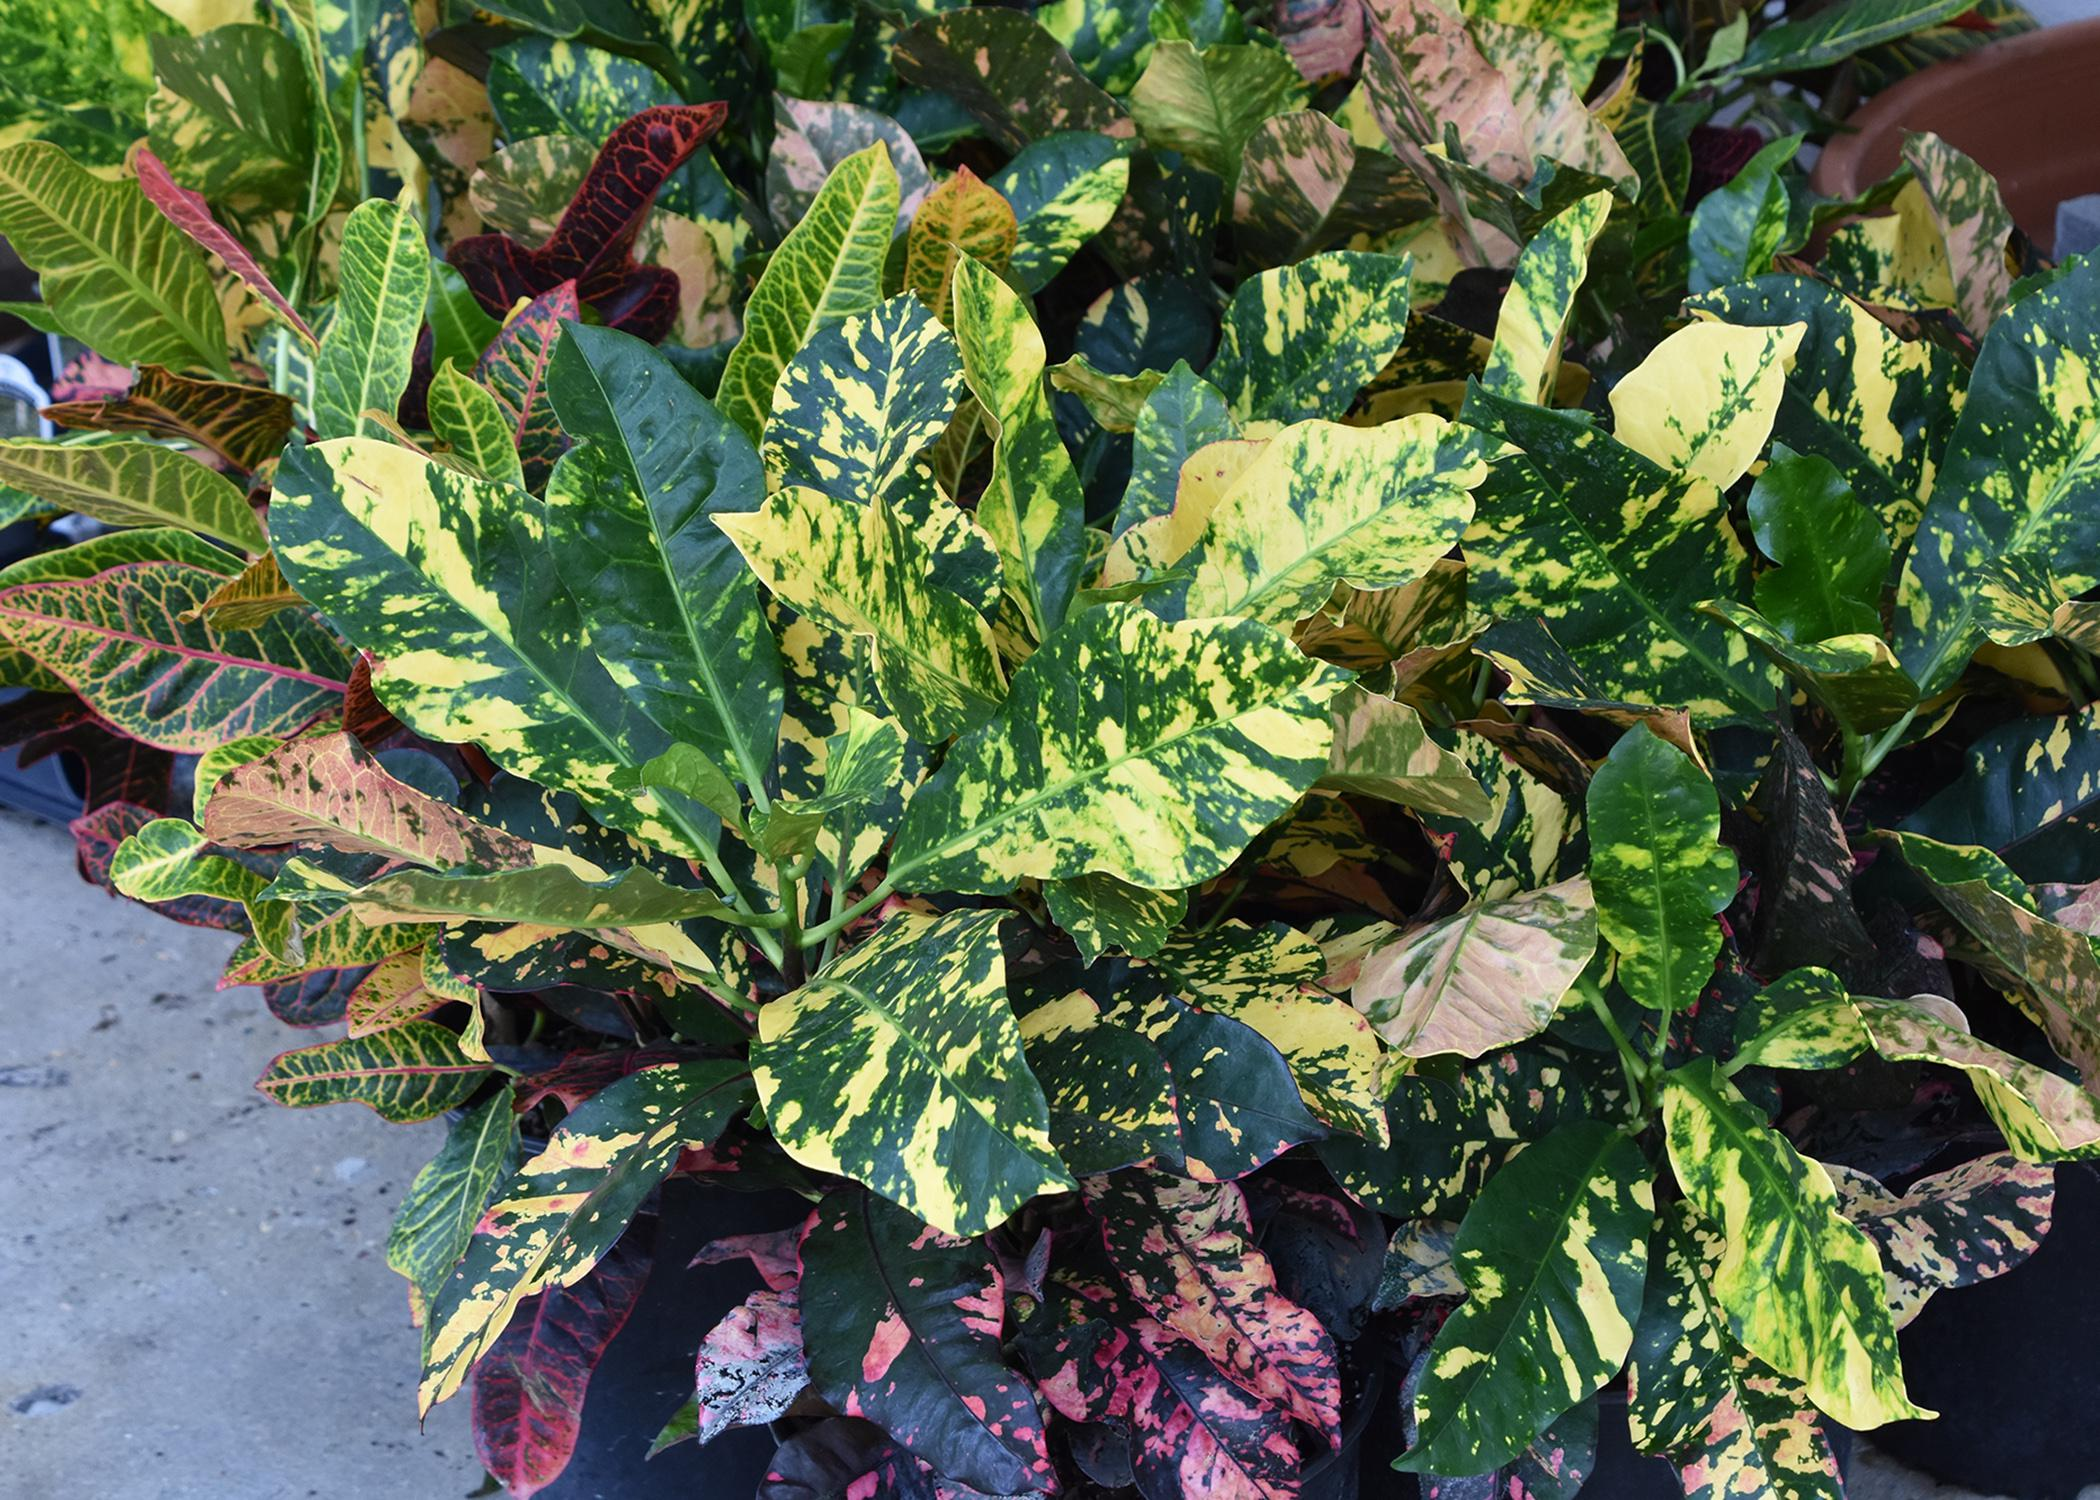 Green leaves are decorated with yellow or pink splotches.